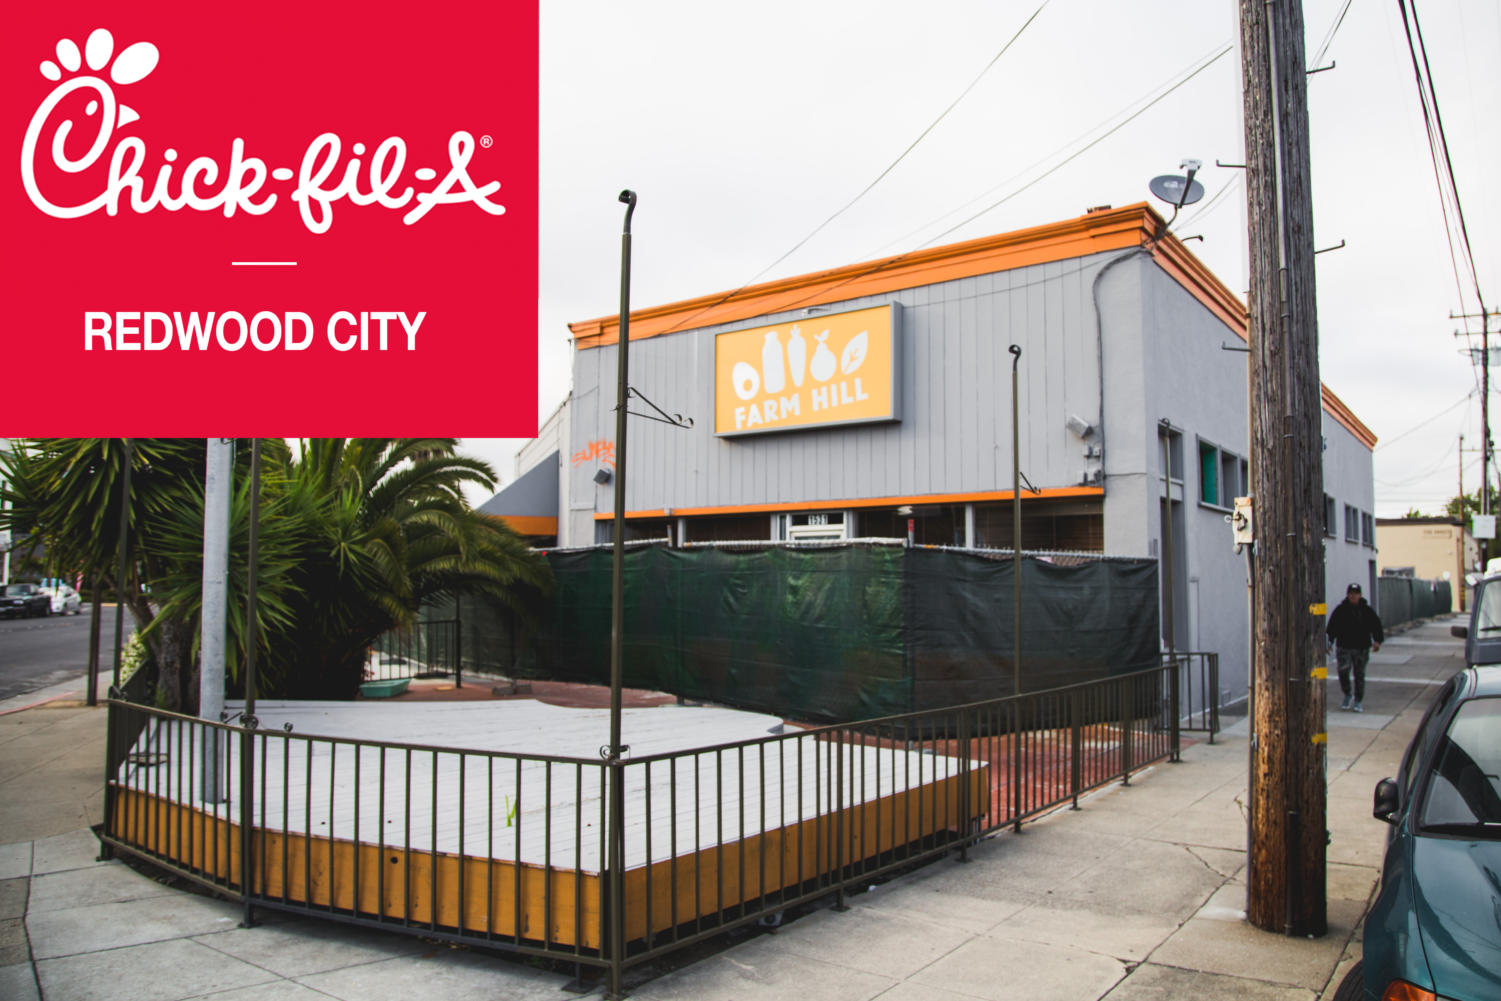 The new Chick-fil-A will reside in Redwood City, Calif.